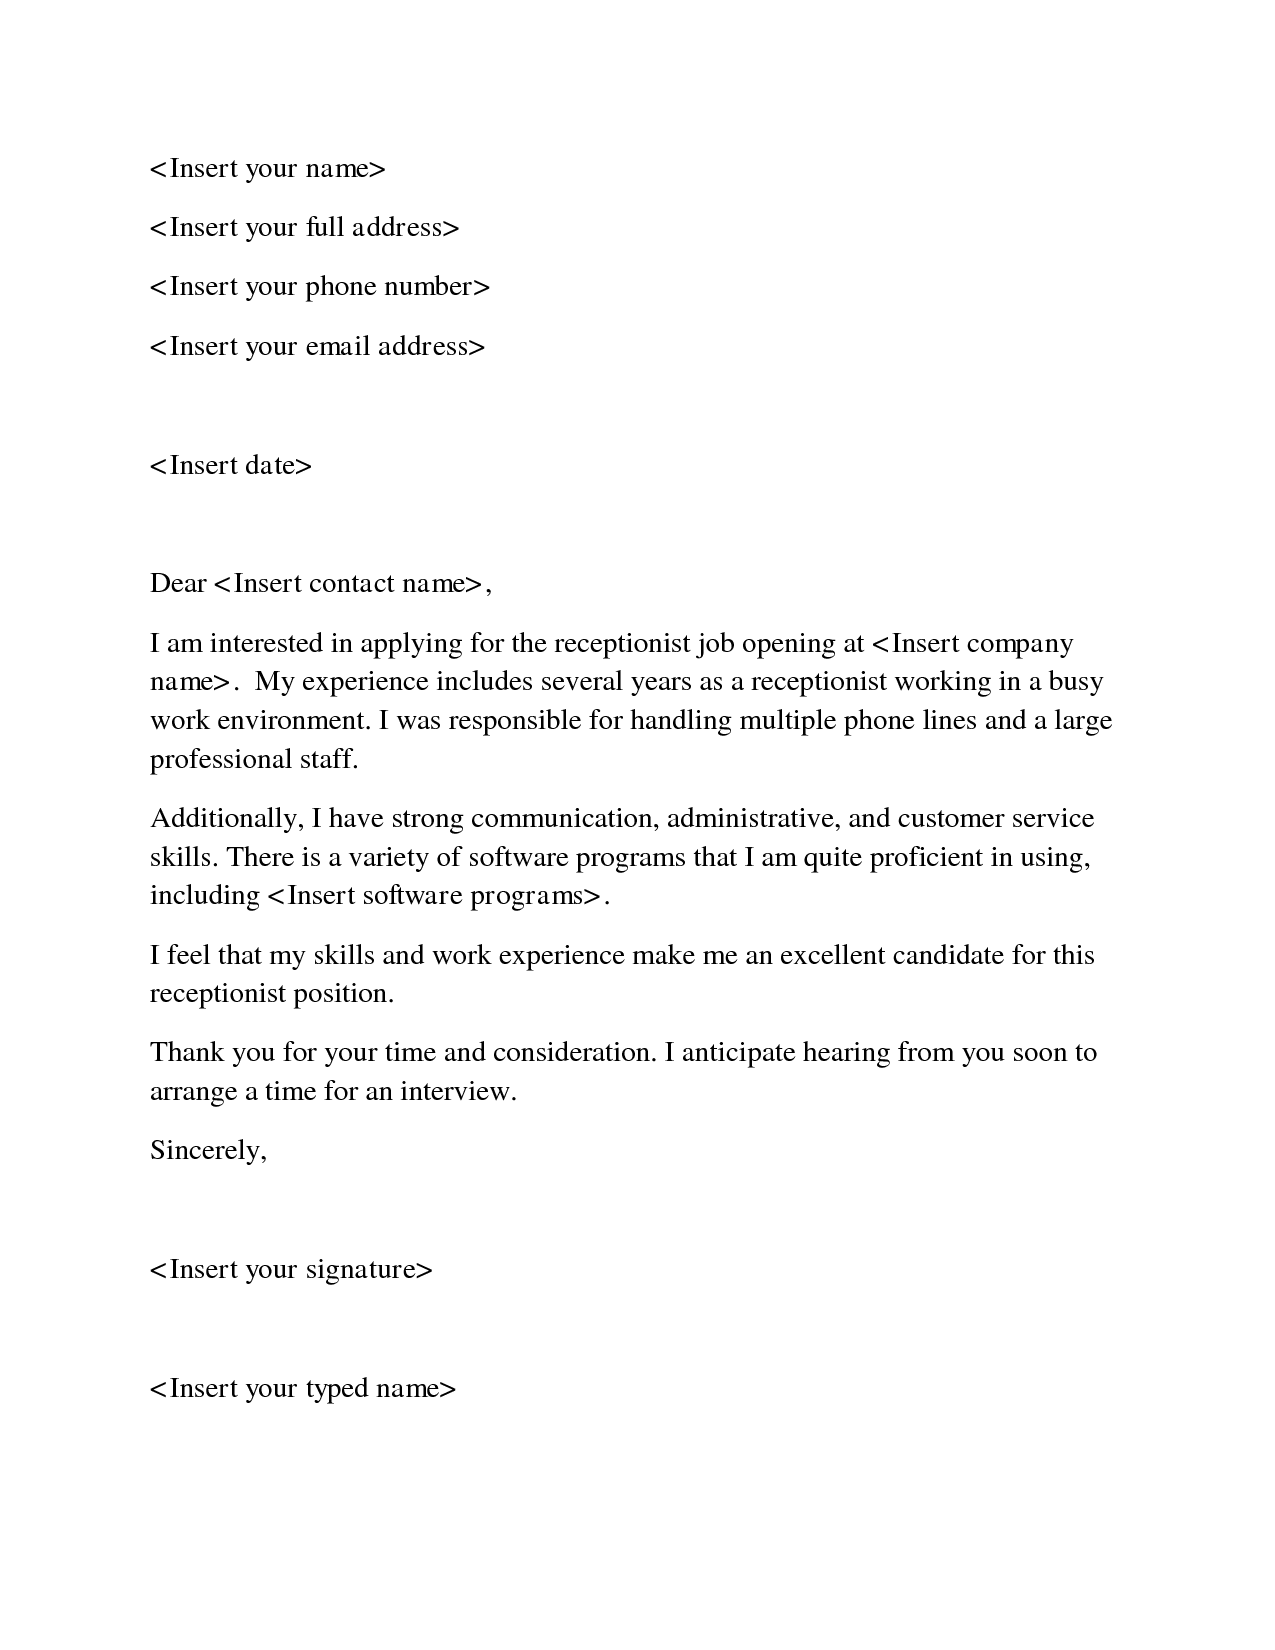 Sample essay letter cover letter for an essay application letter cover letter help receptionist resume top essay writingcover cover letter help receptionist resume top essay writingcover altavistaventures